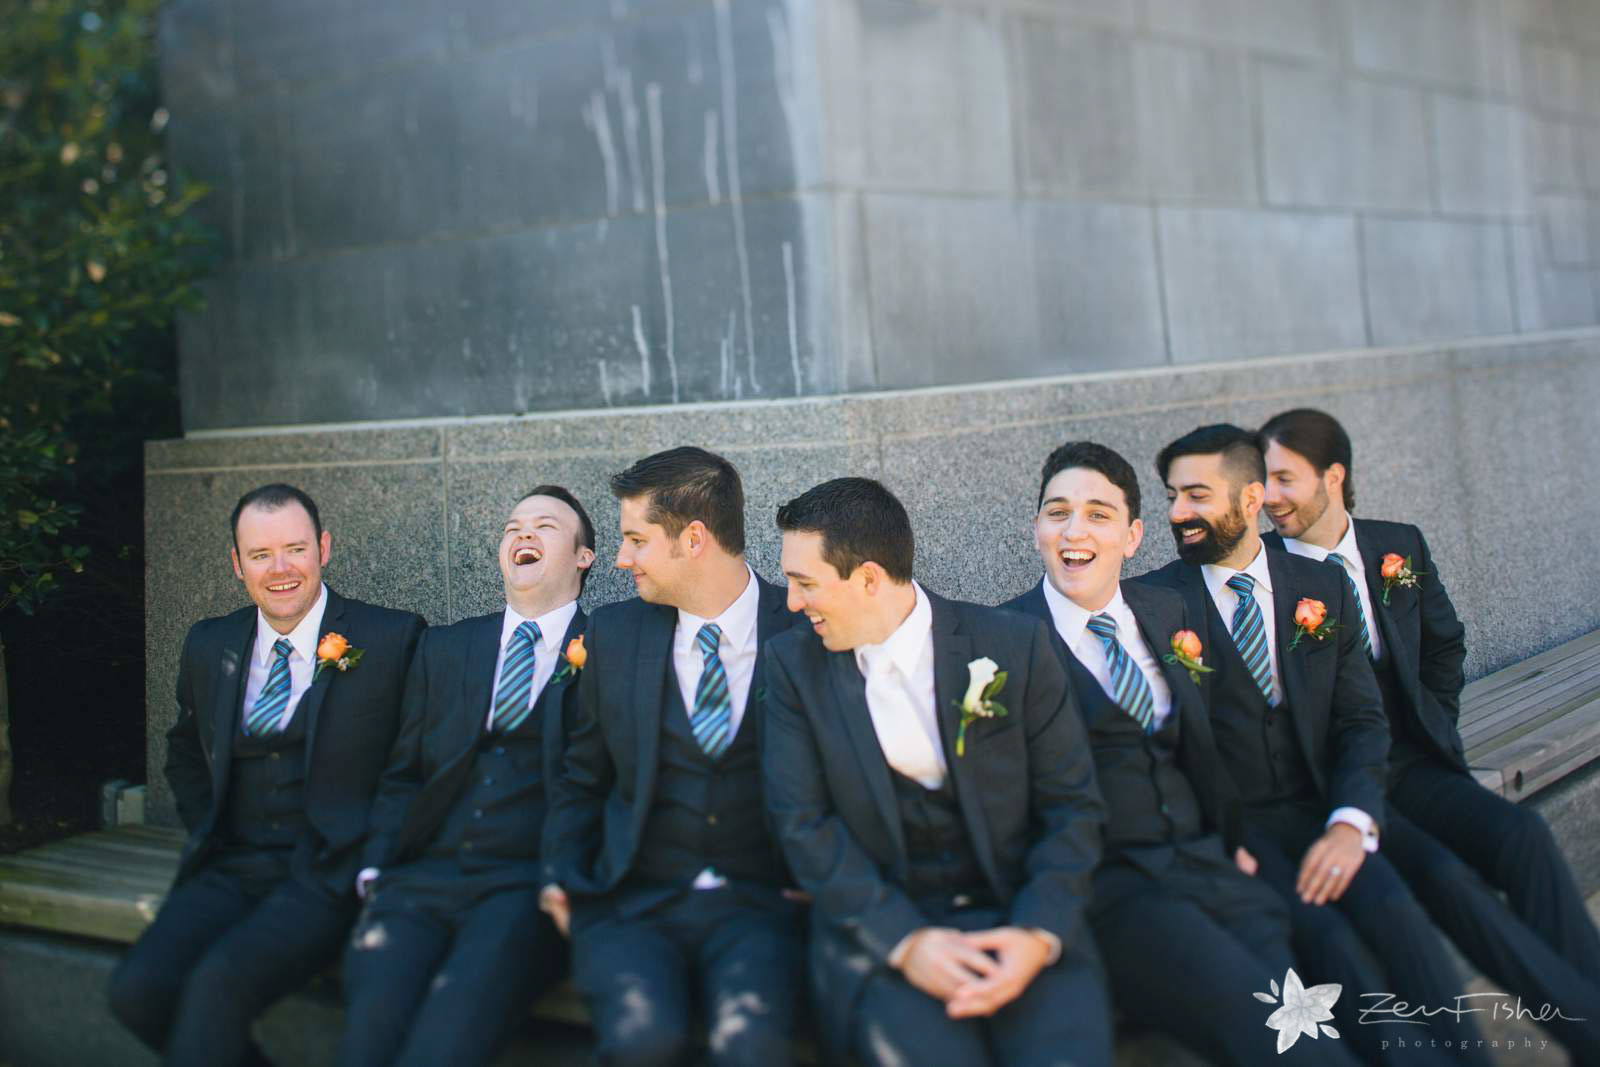 Casual groomsmen portrait, groom and groomsmen sitting outside and laughing together.